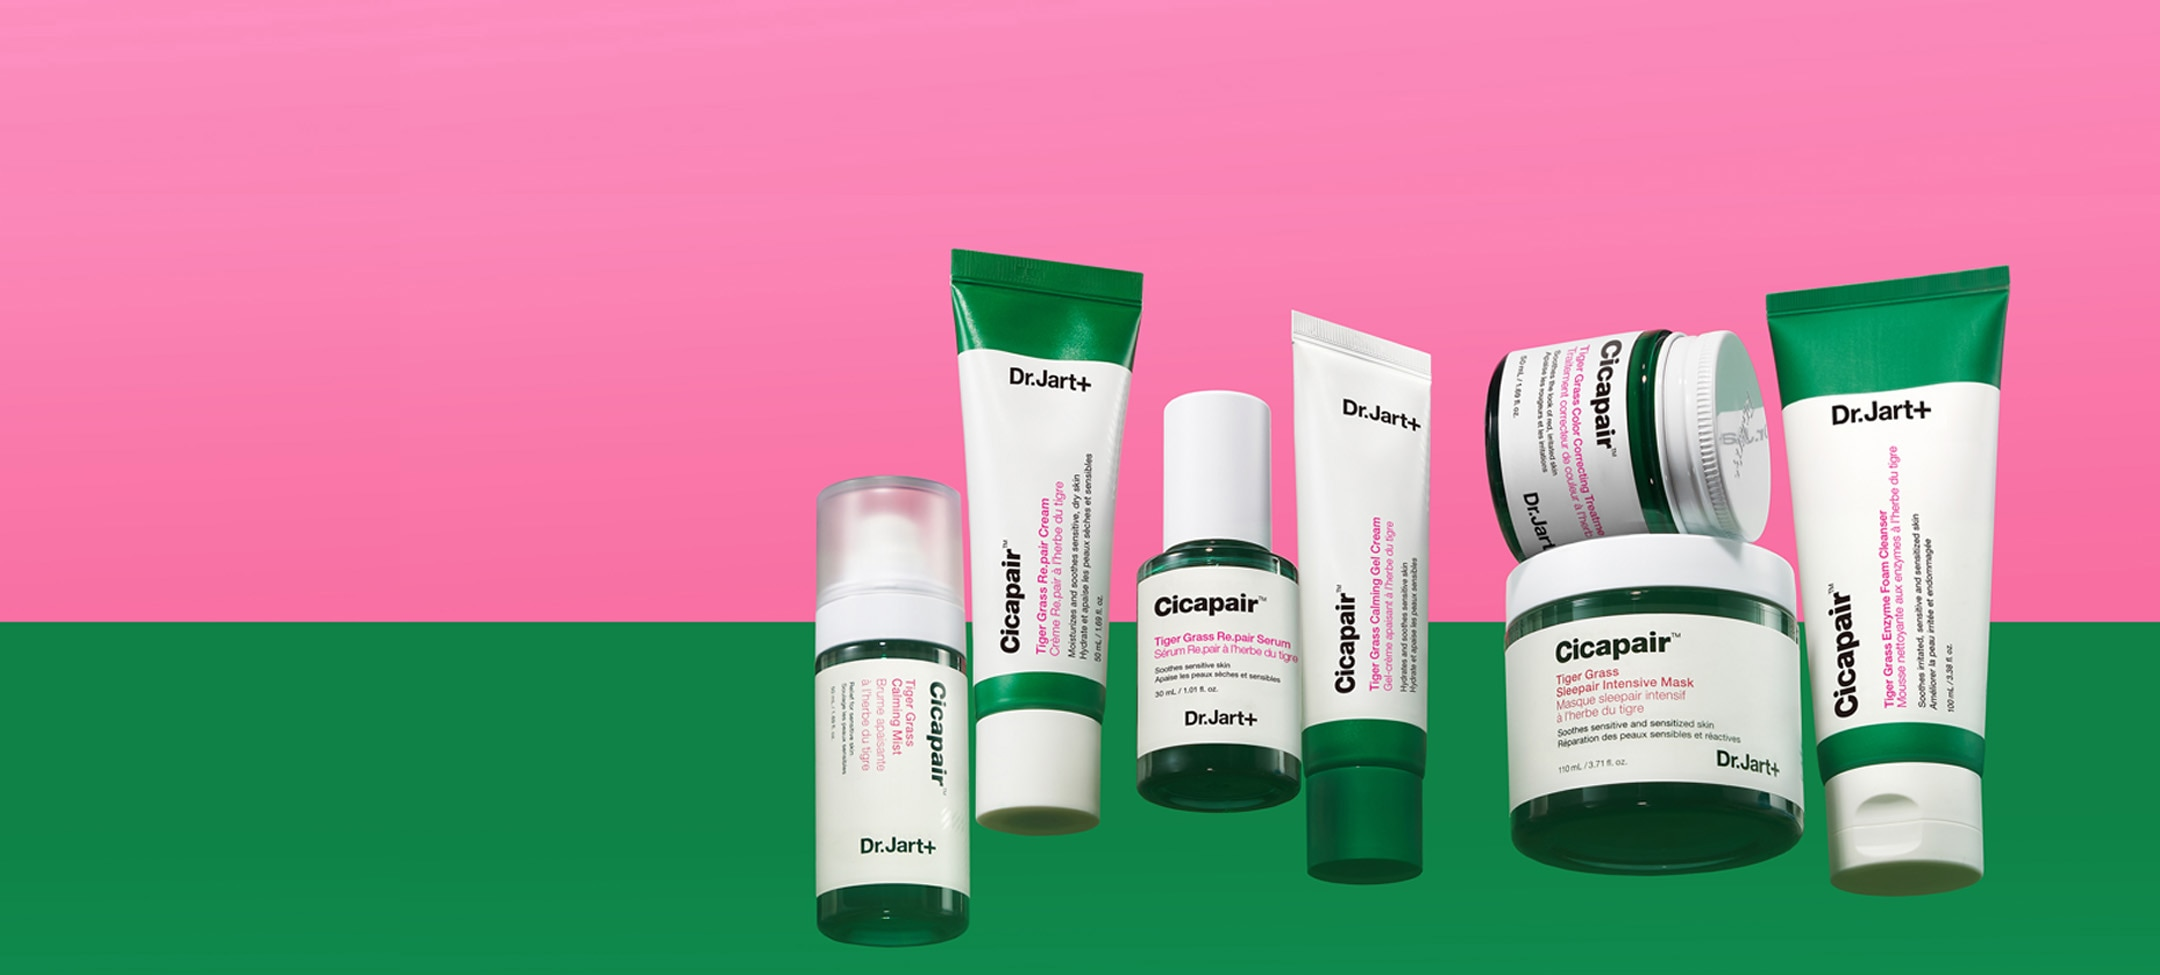 Full Cicapair Product Collection